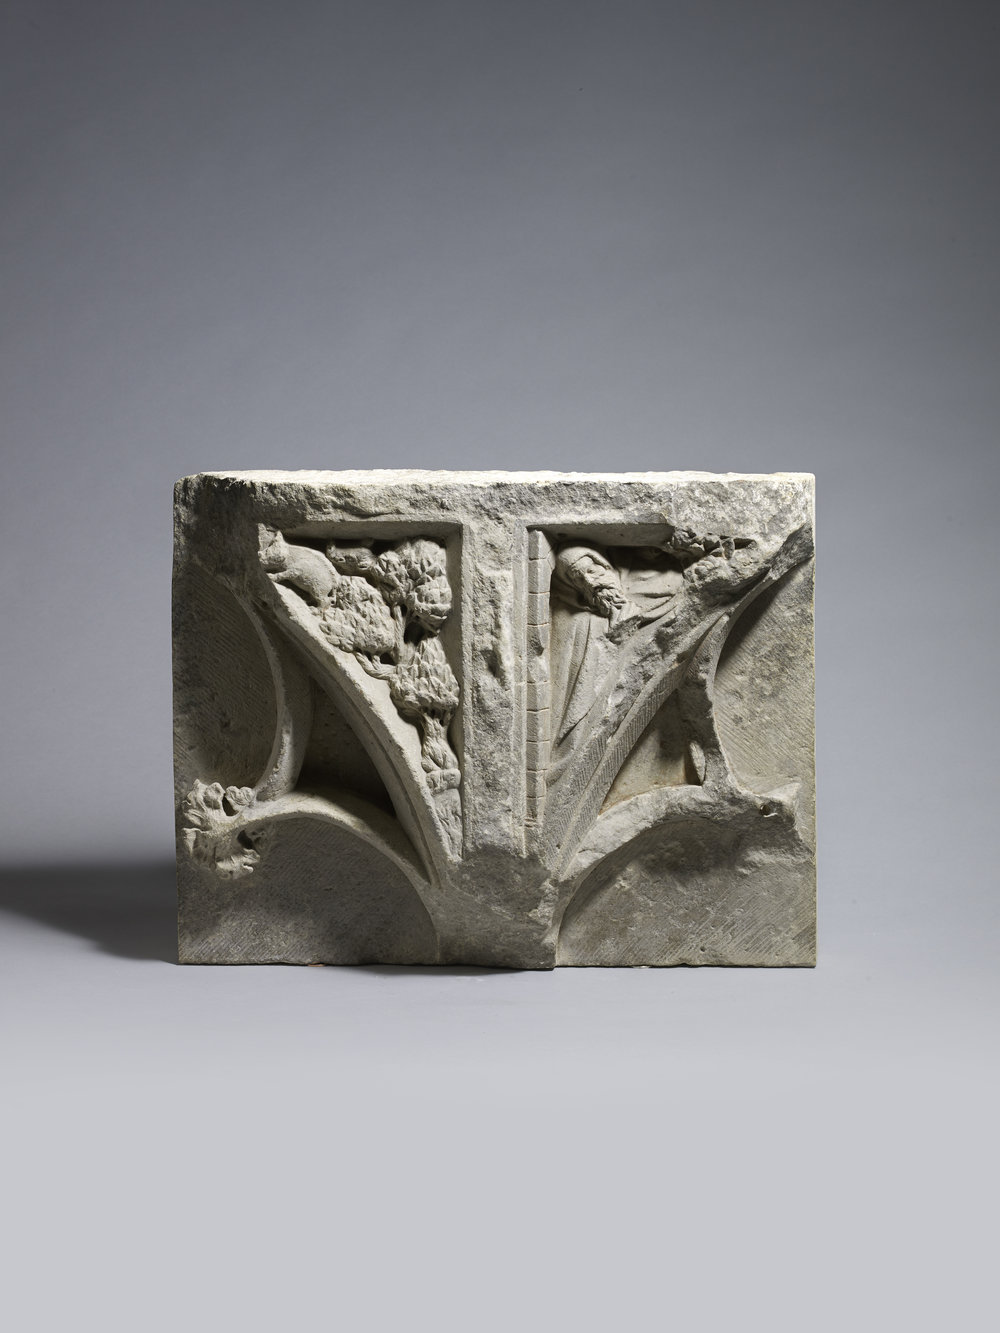 Spandrel with Saint Anthony Abbot France Late 14th century Provenance: Private Collection, London 37 x 45 x 5 cm; limestone   (1121)